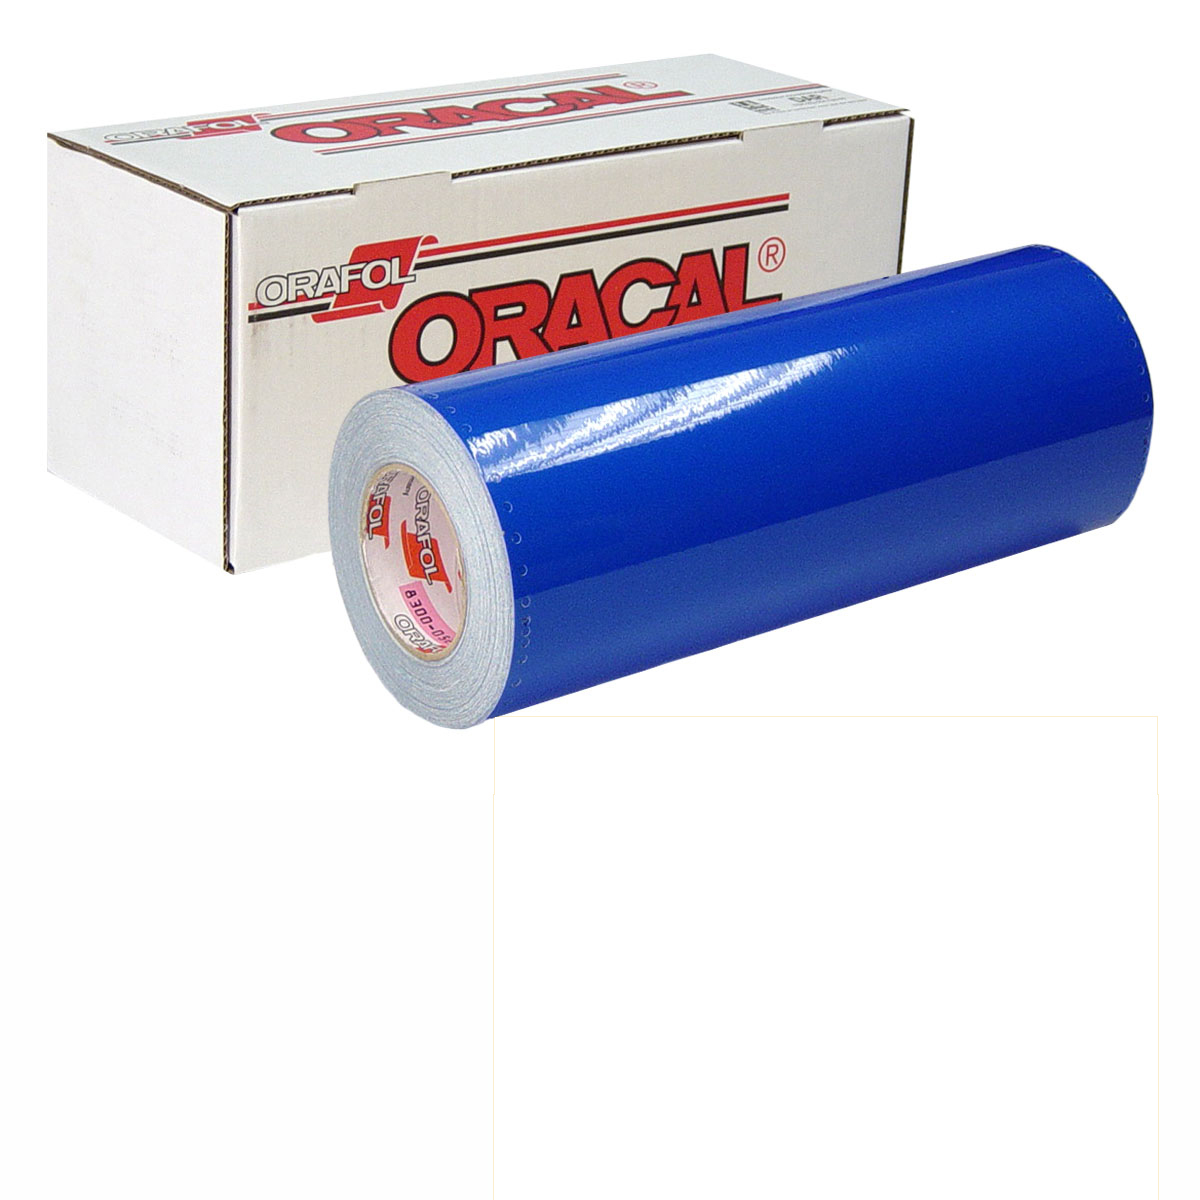 ORACAL 631 15in X 50yd 010 White